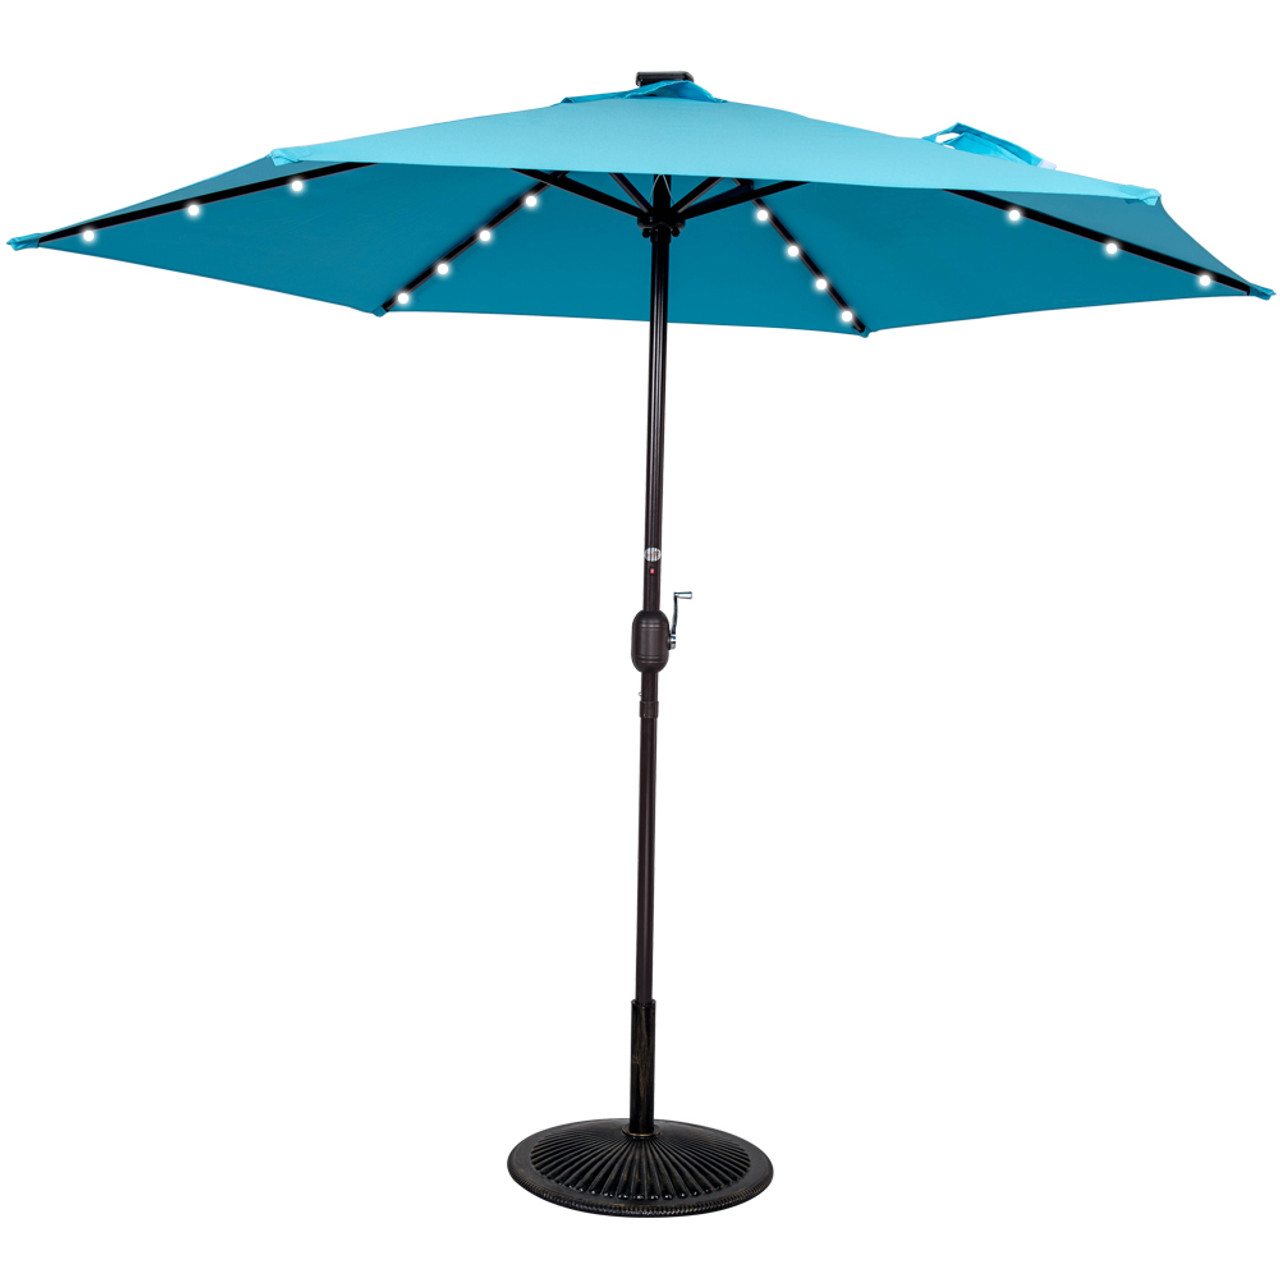 Merveilleux 9ft 24 Led Light Outdoor Market Patio Umbrella Garden Pool With Crank, 6  Ribs (Light Blue)